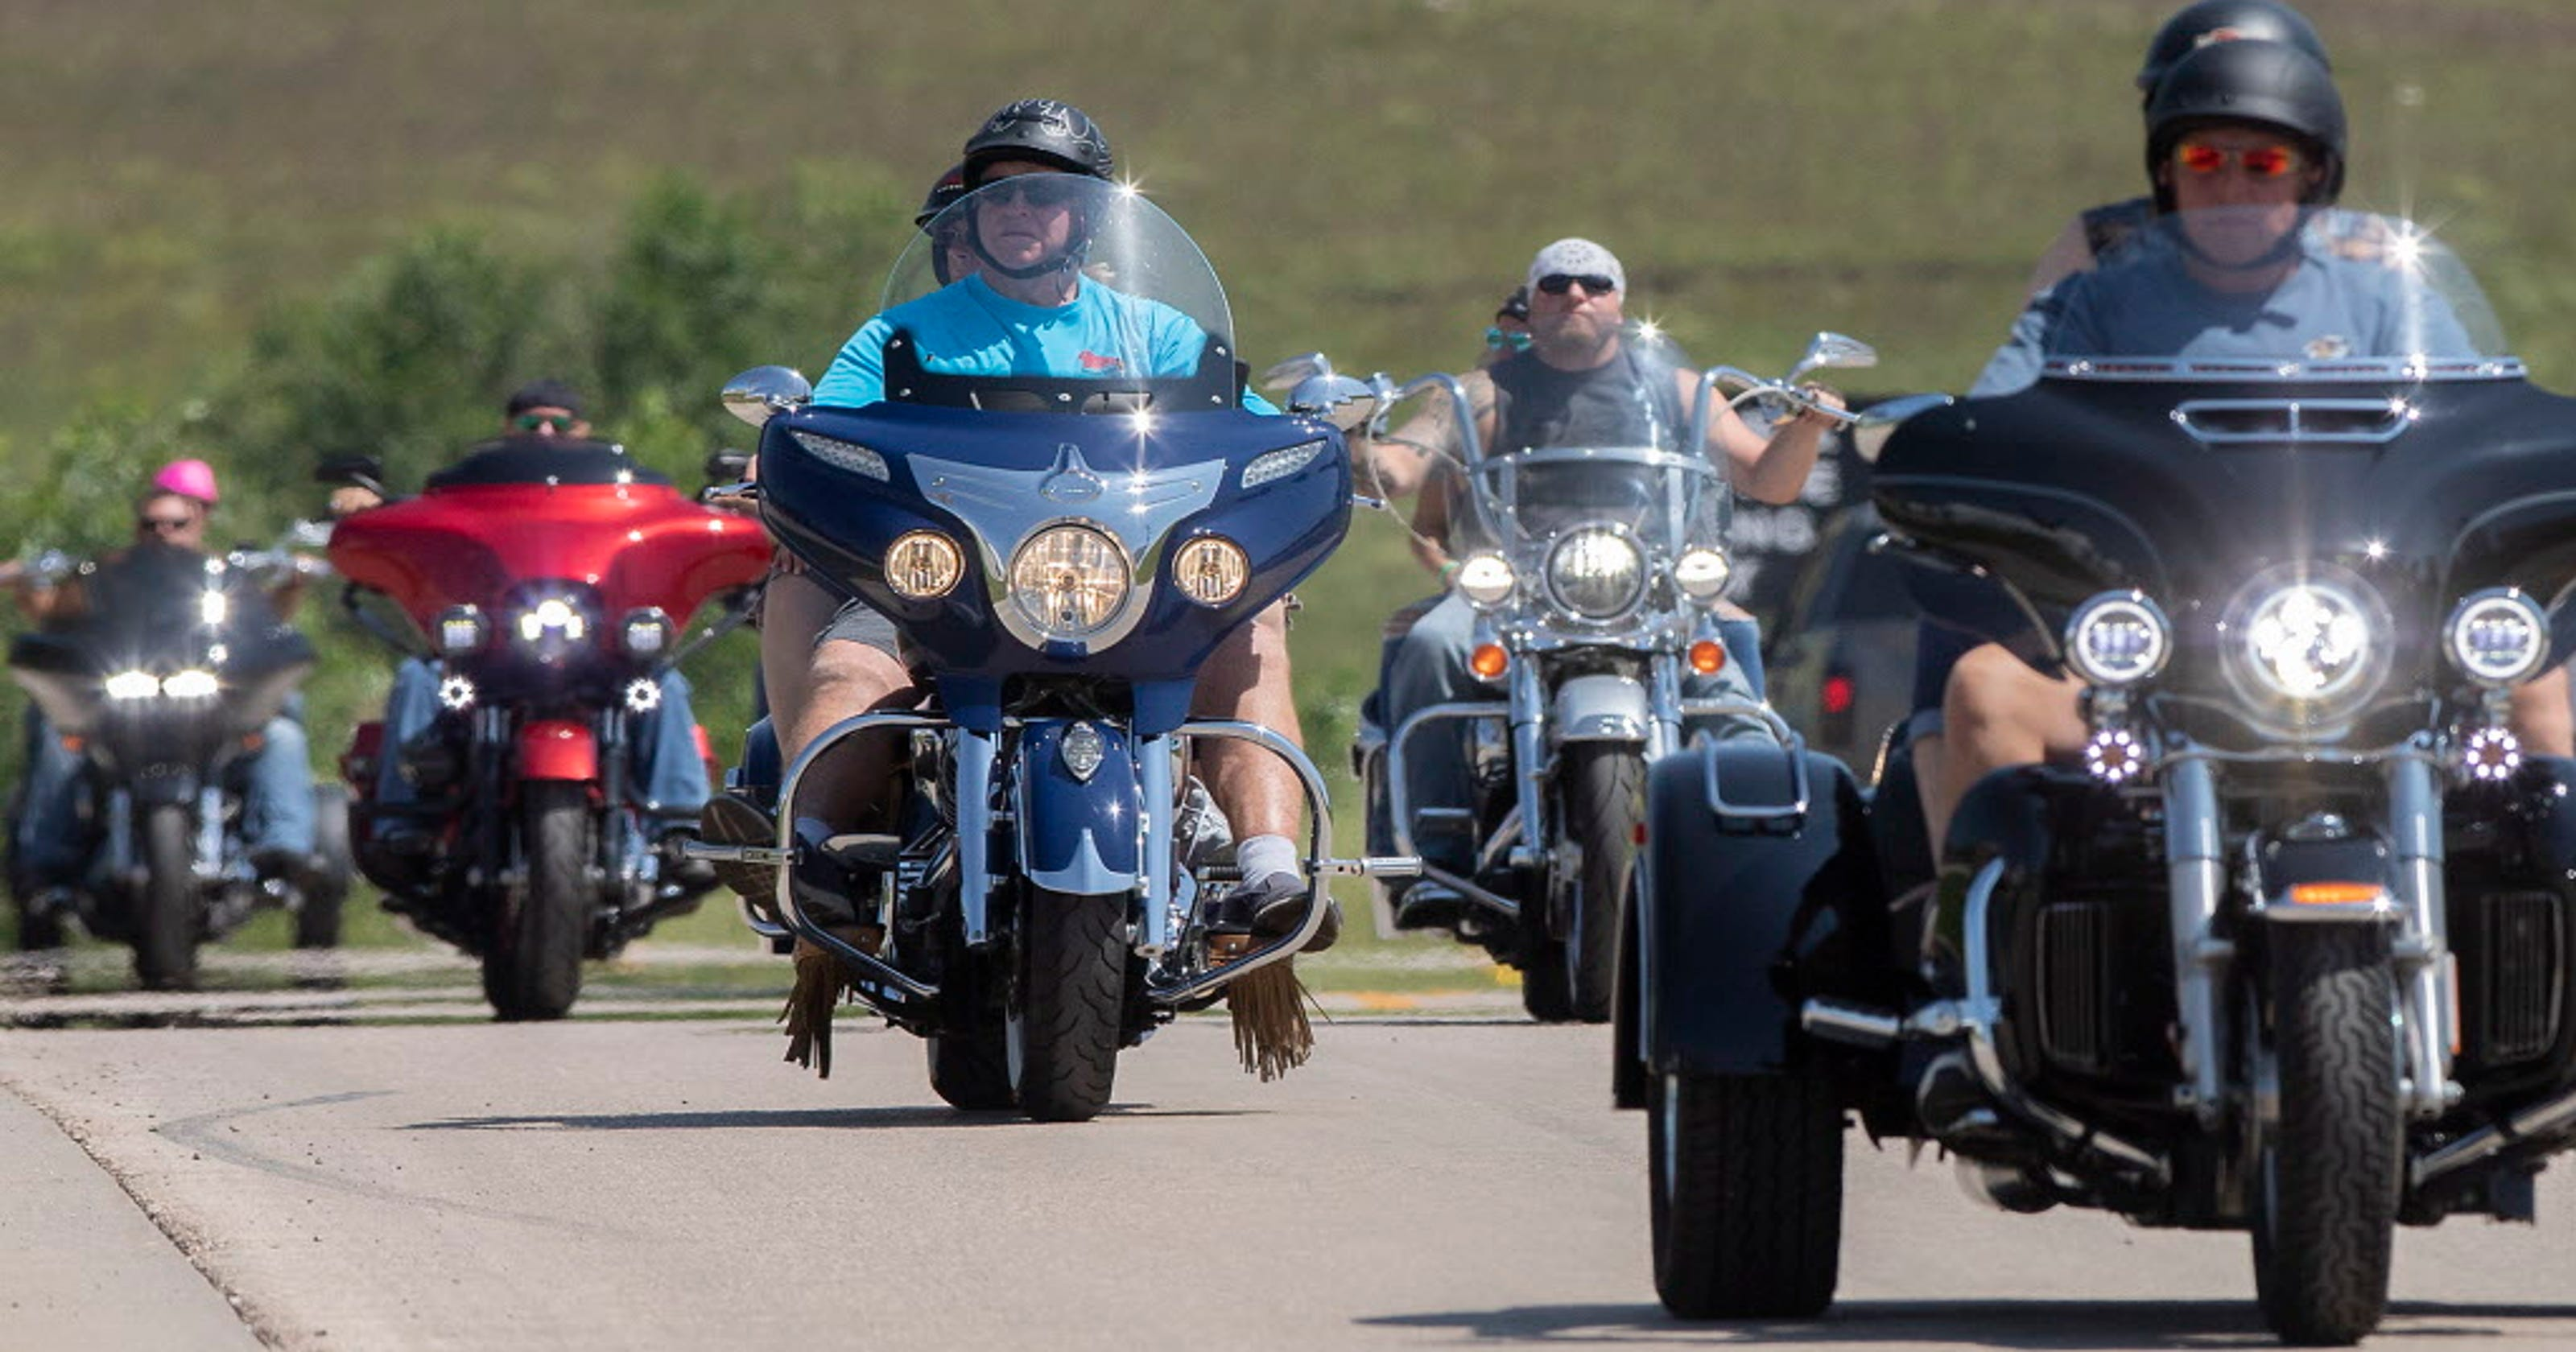 COVID-19 cases tied to the Sturgis motorcycle rally have